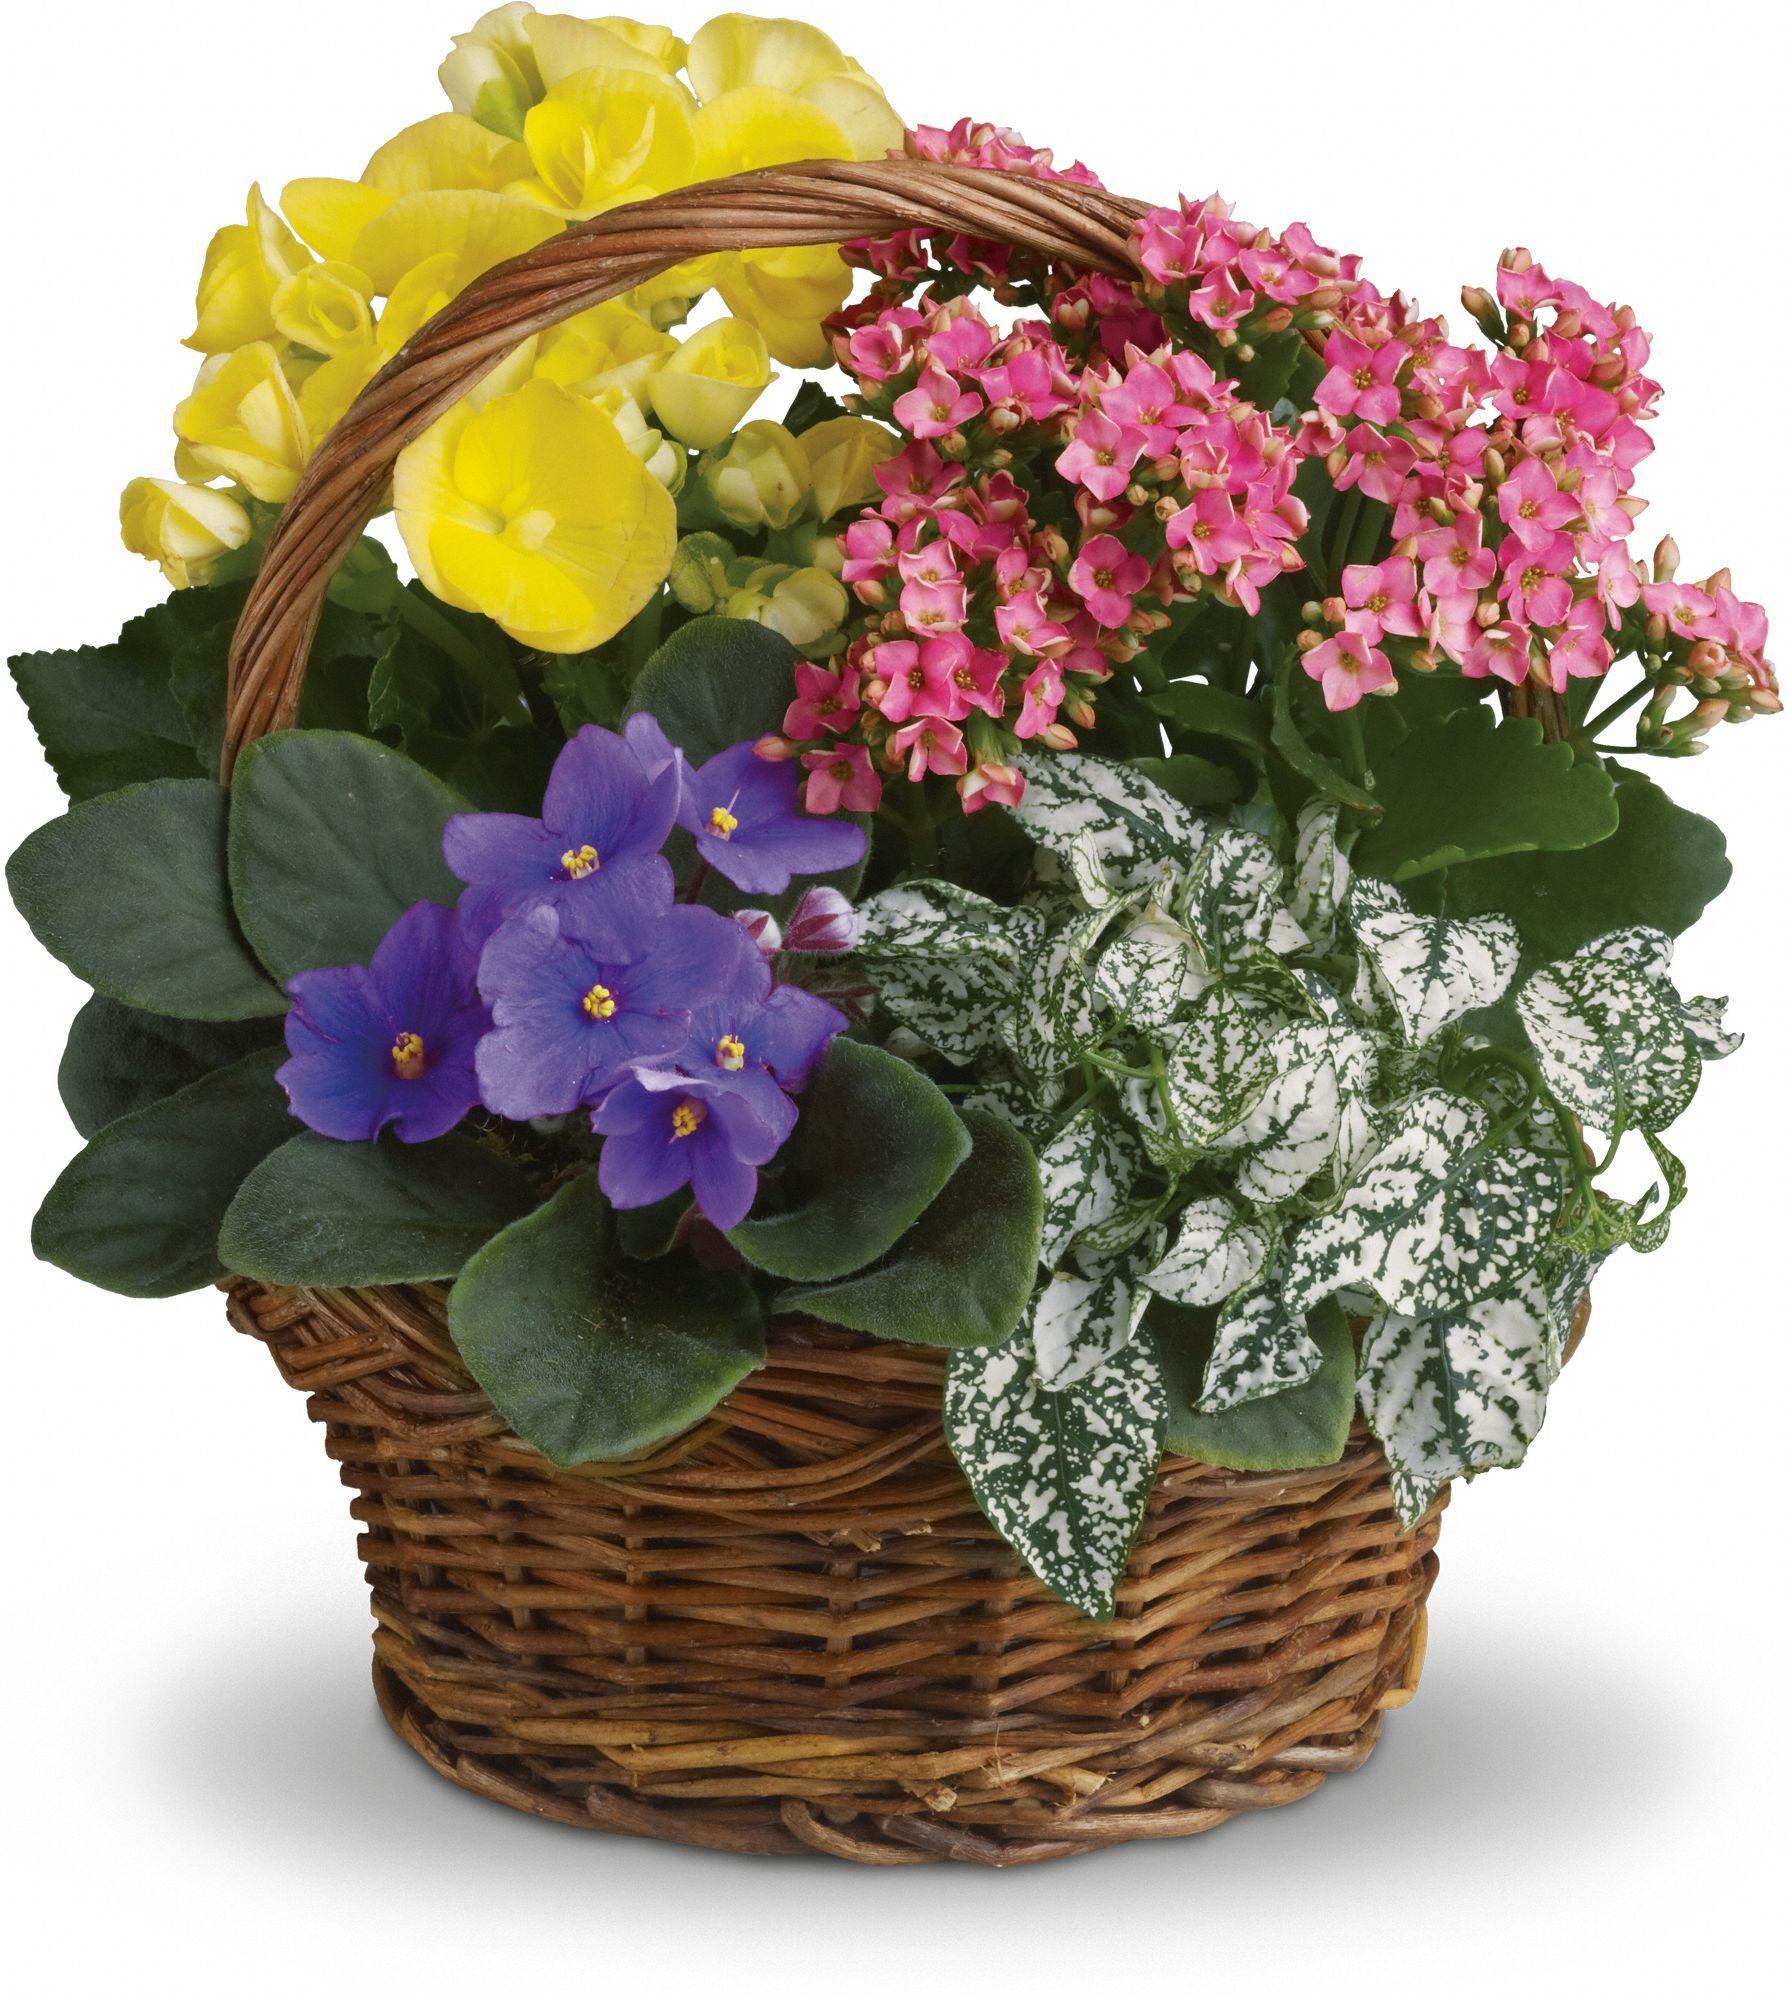 Spring has sprung mixed basket save 25 on this bouquet and many spring has sprung mixed basket delivered by delivered by alberts florist in san luis obispo ca 93401 93405 93407 93408 93410 izmirmasajfo